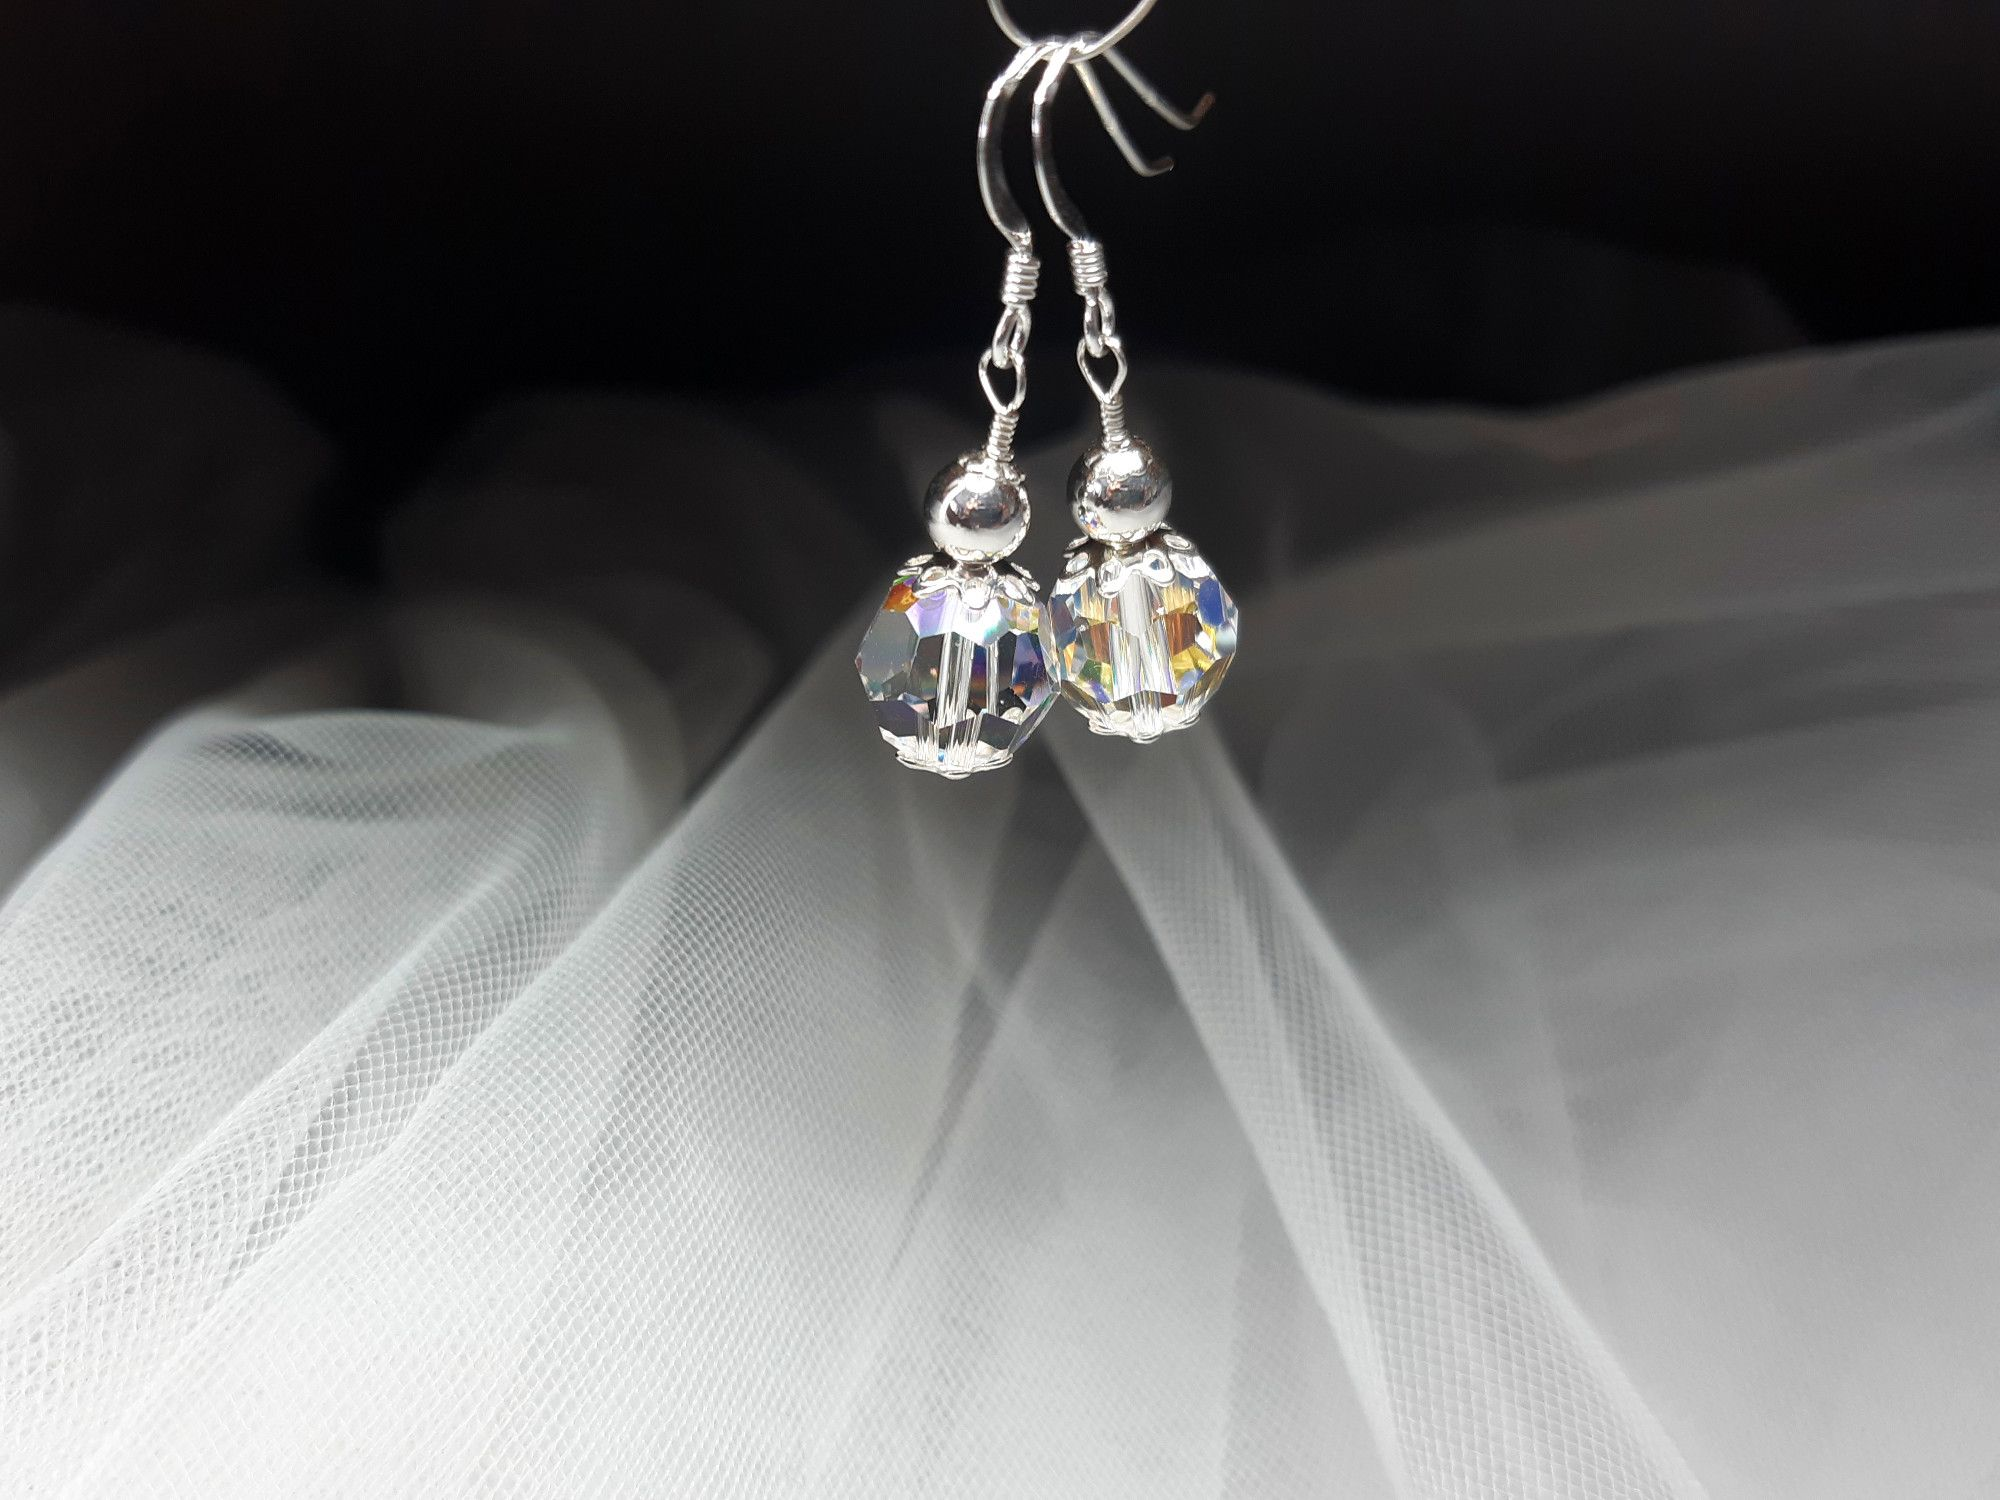 Occasion-bridal-earrings with swarovski crystal+sterling silver-15.jpg